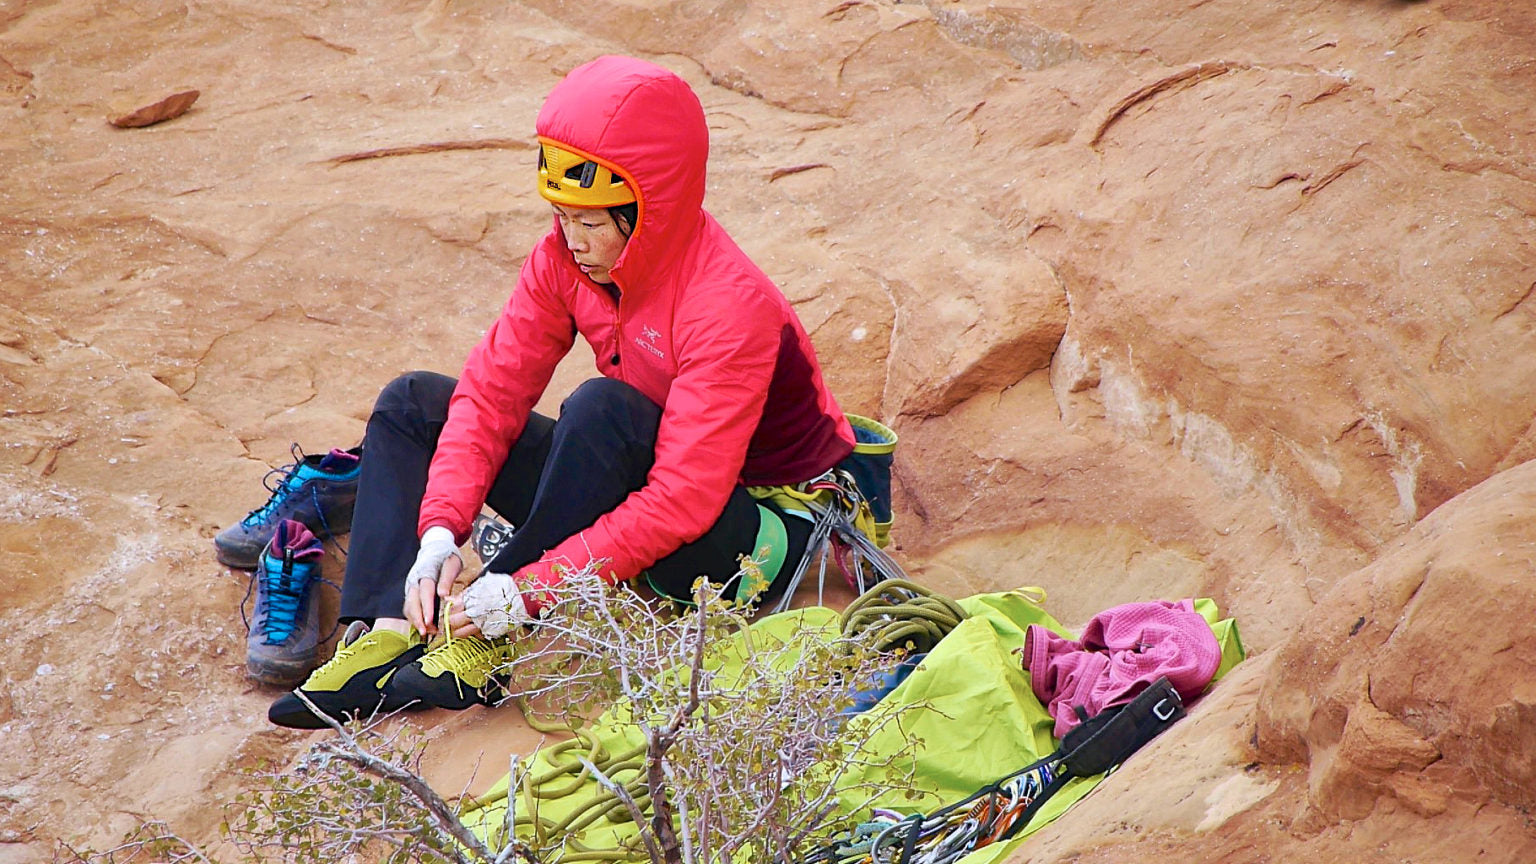 Rock climber woman tightening her shoes